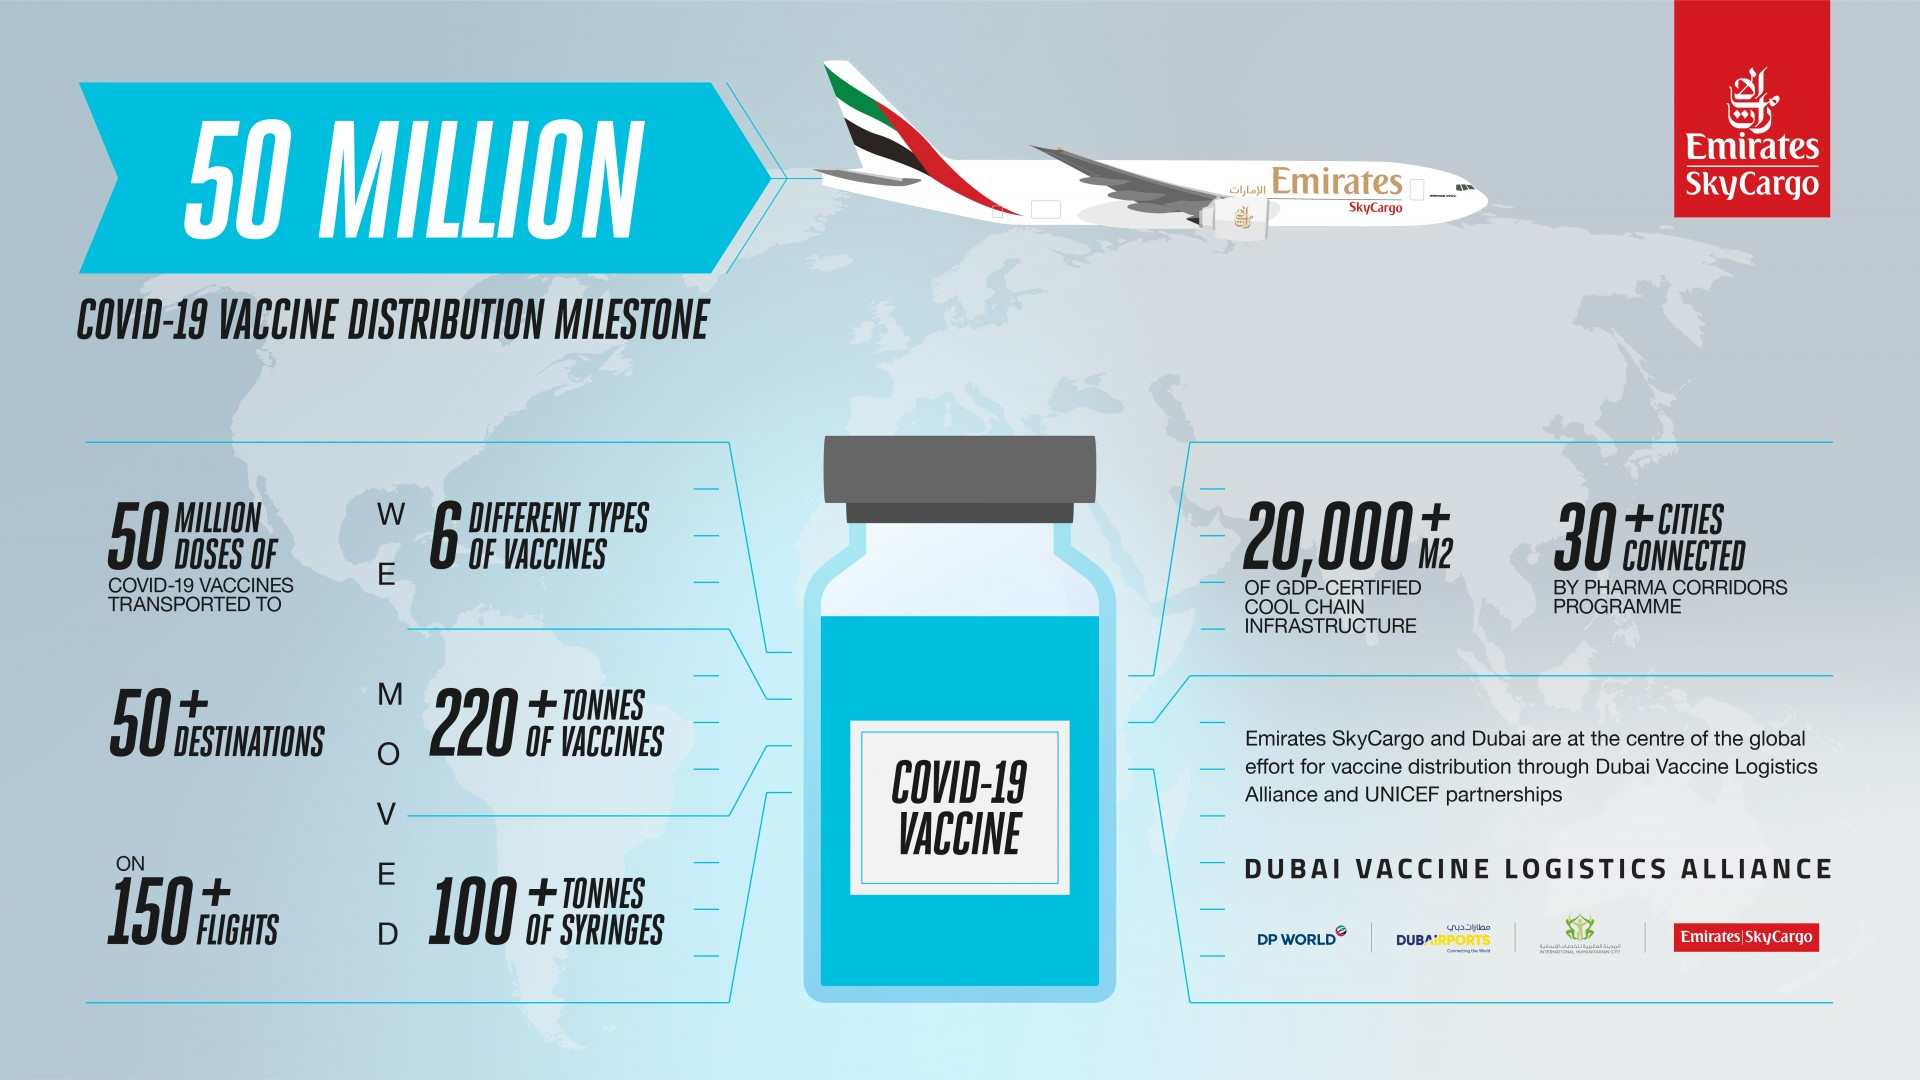 Emirates SkyCargo transports 50 million doses of COVID-19 vaccines